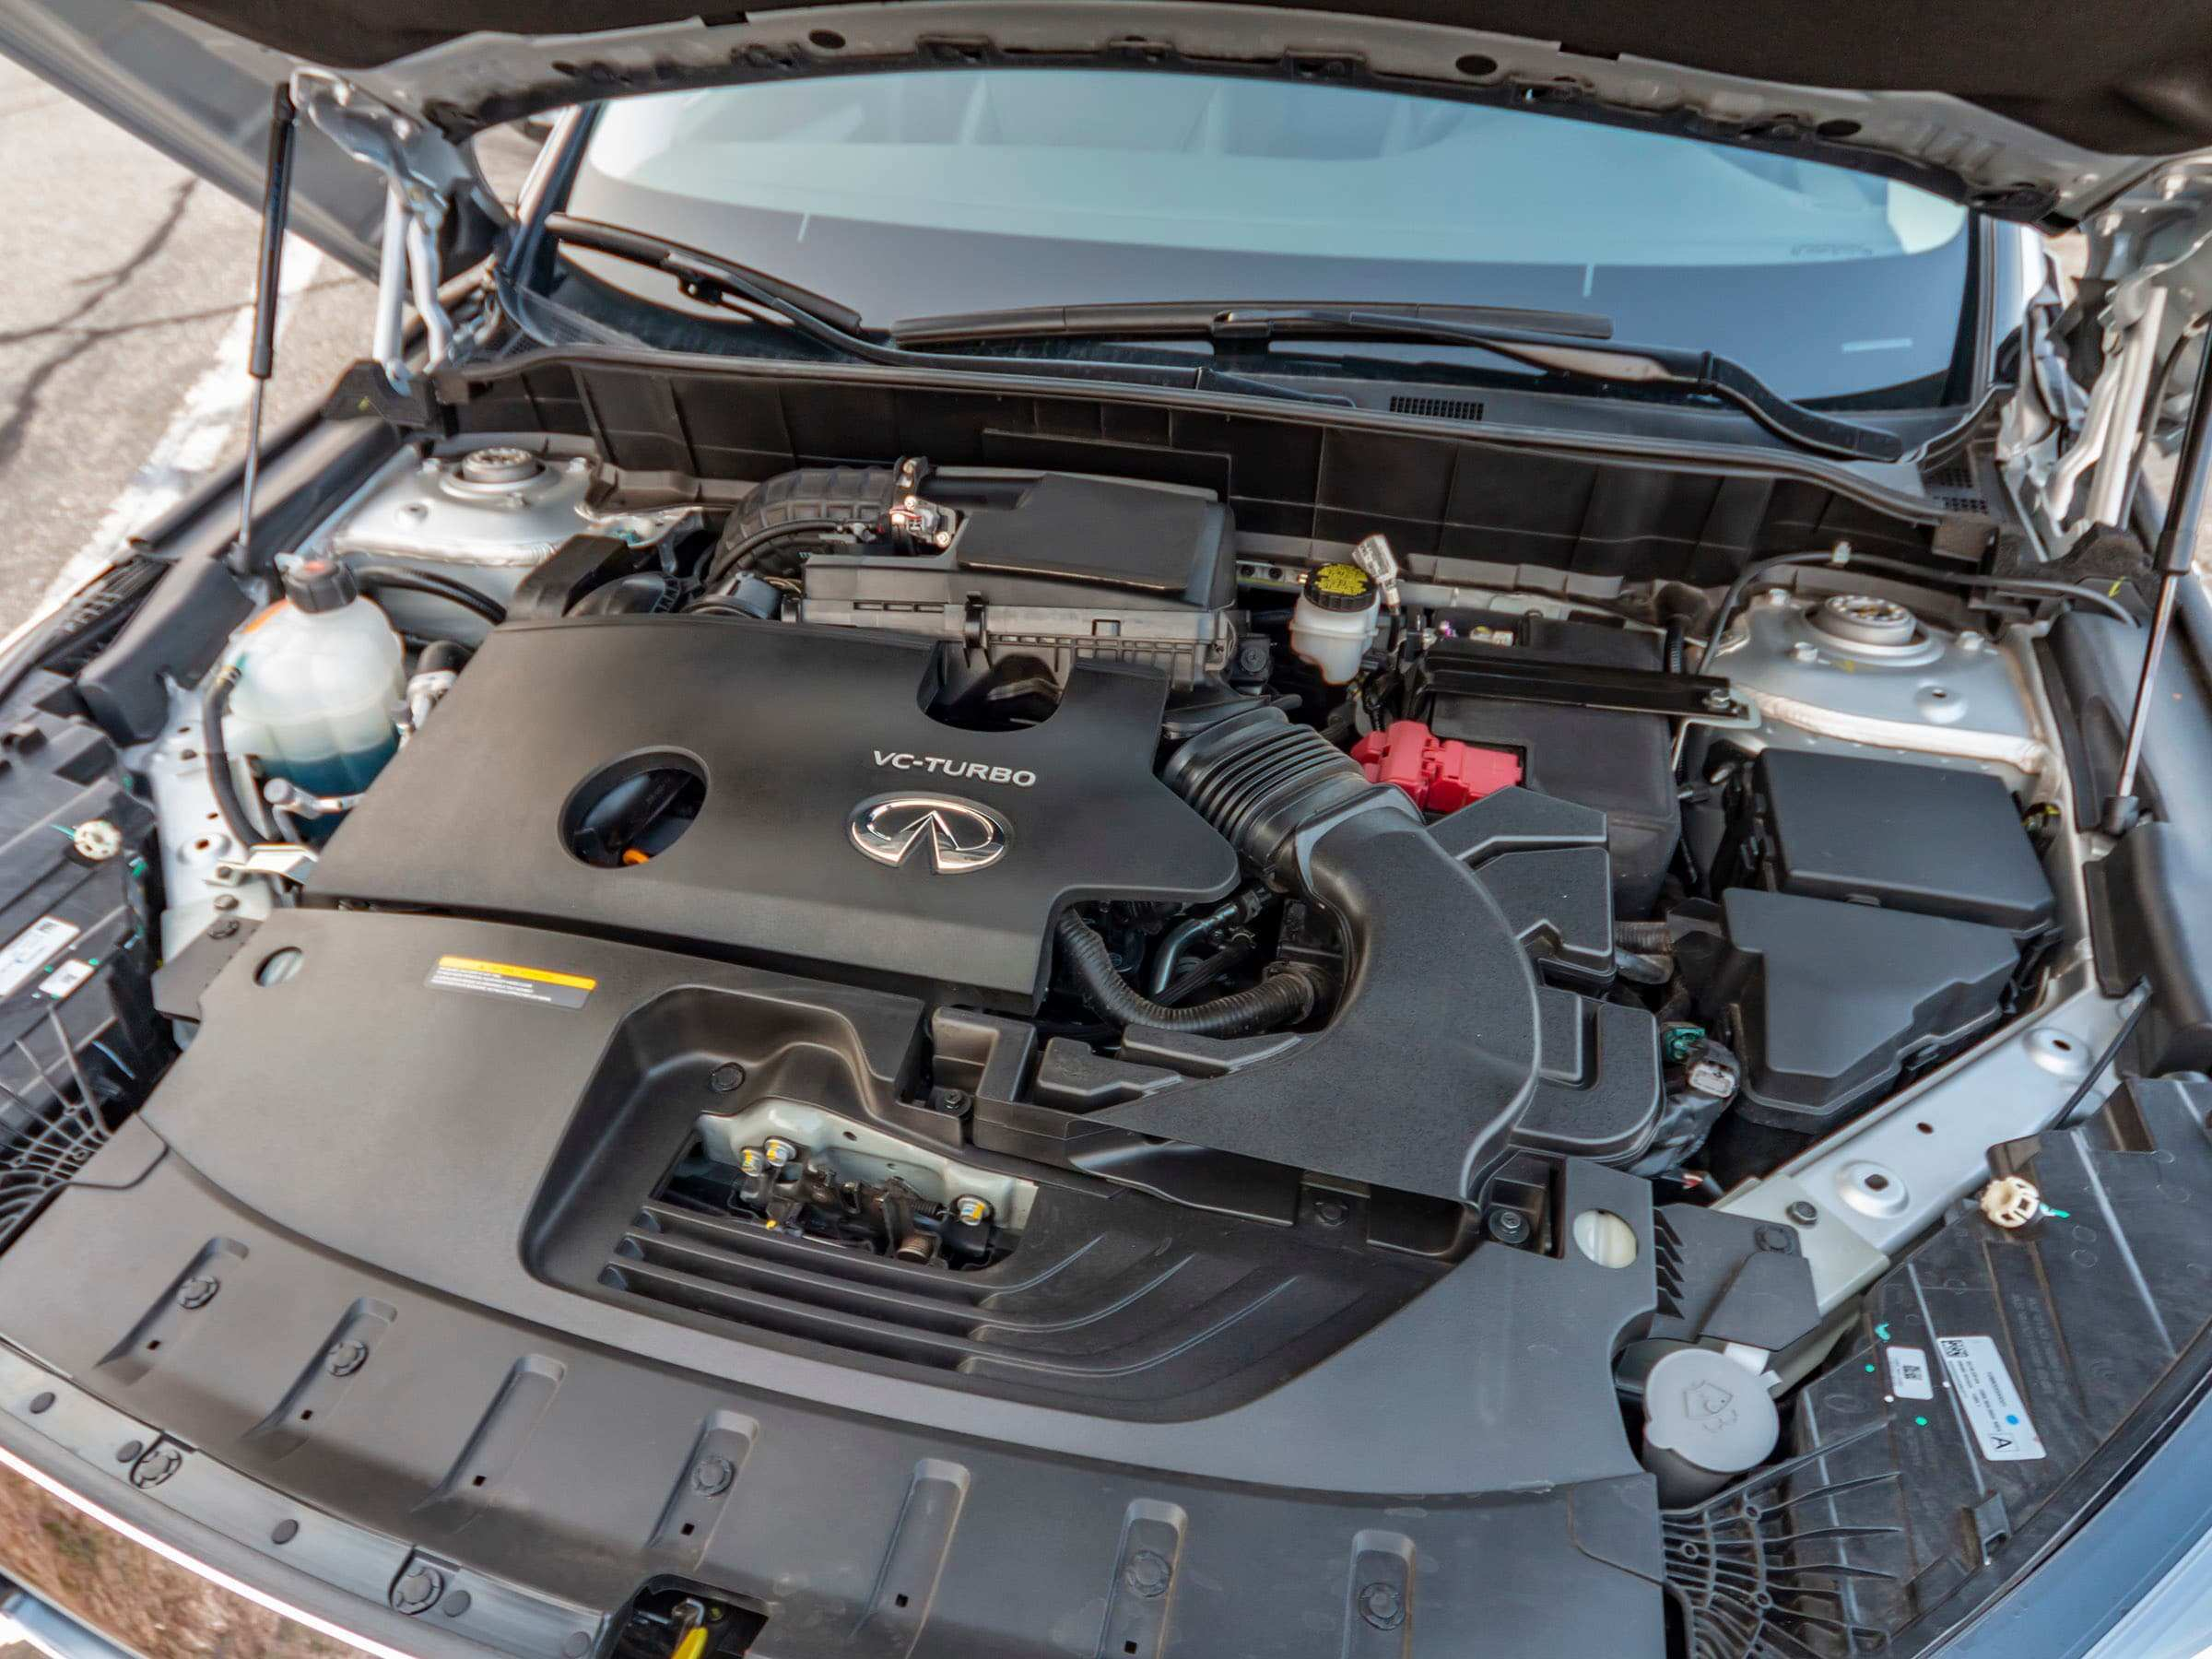 85 Gallery of Best 2019 Infiniti Qx50 Kbb Review Engine with Best 2019 Infiniti Qx50 Kbb Review